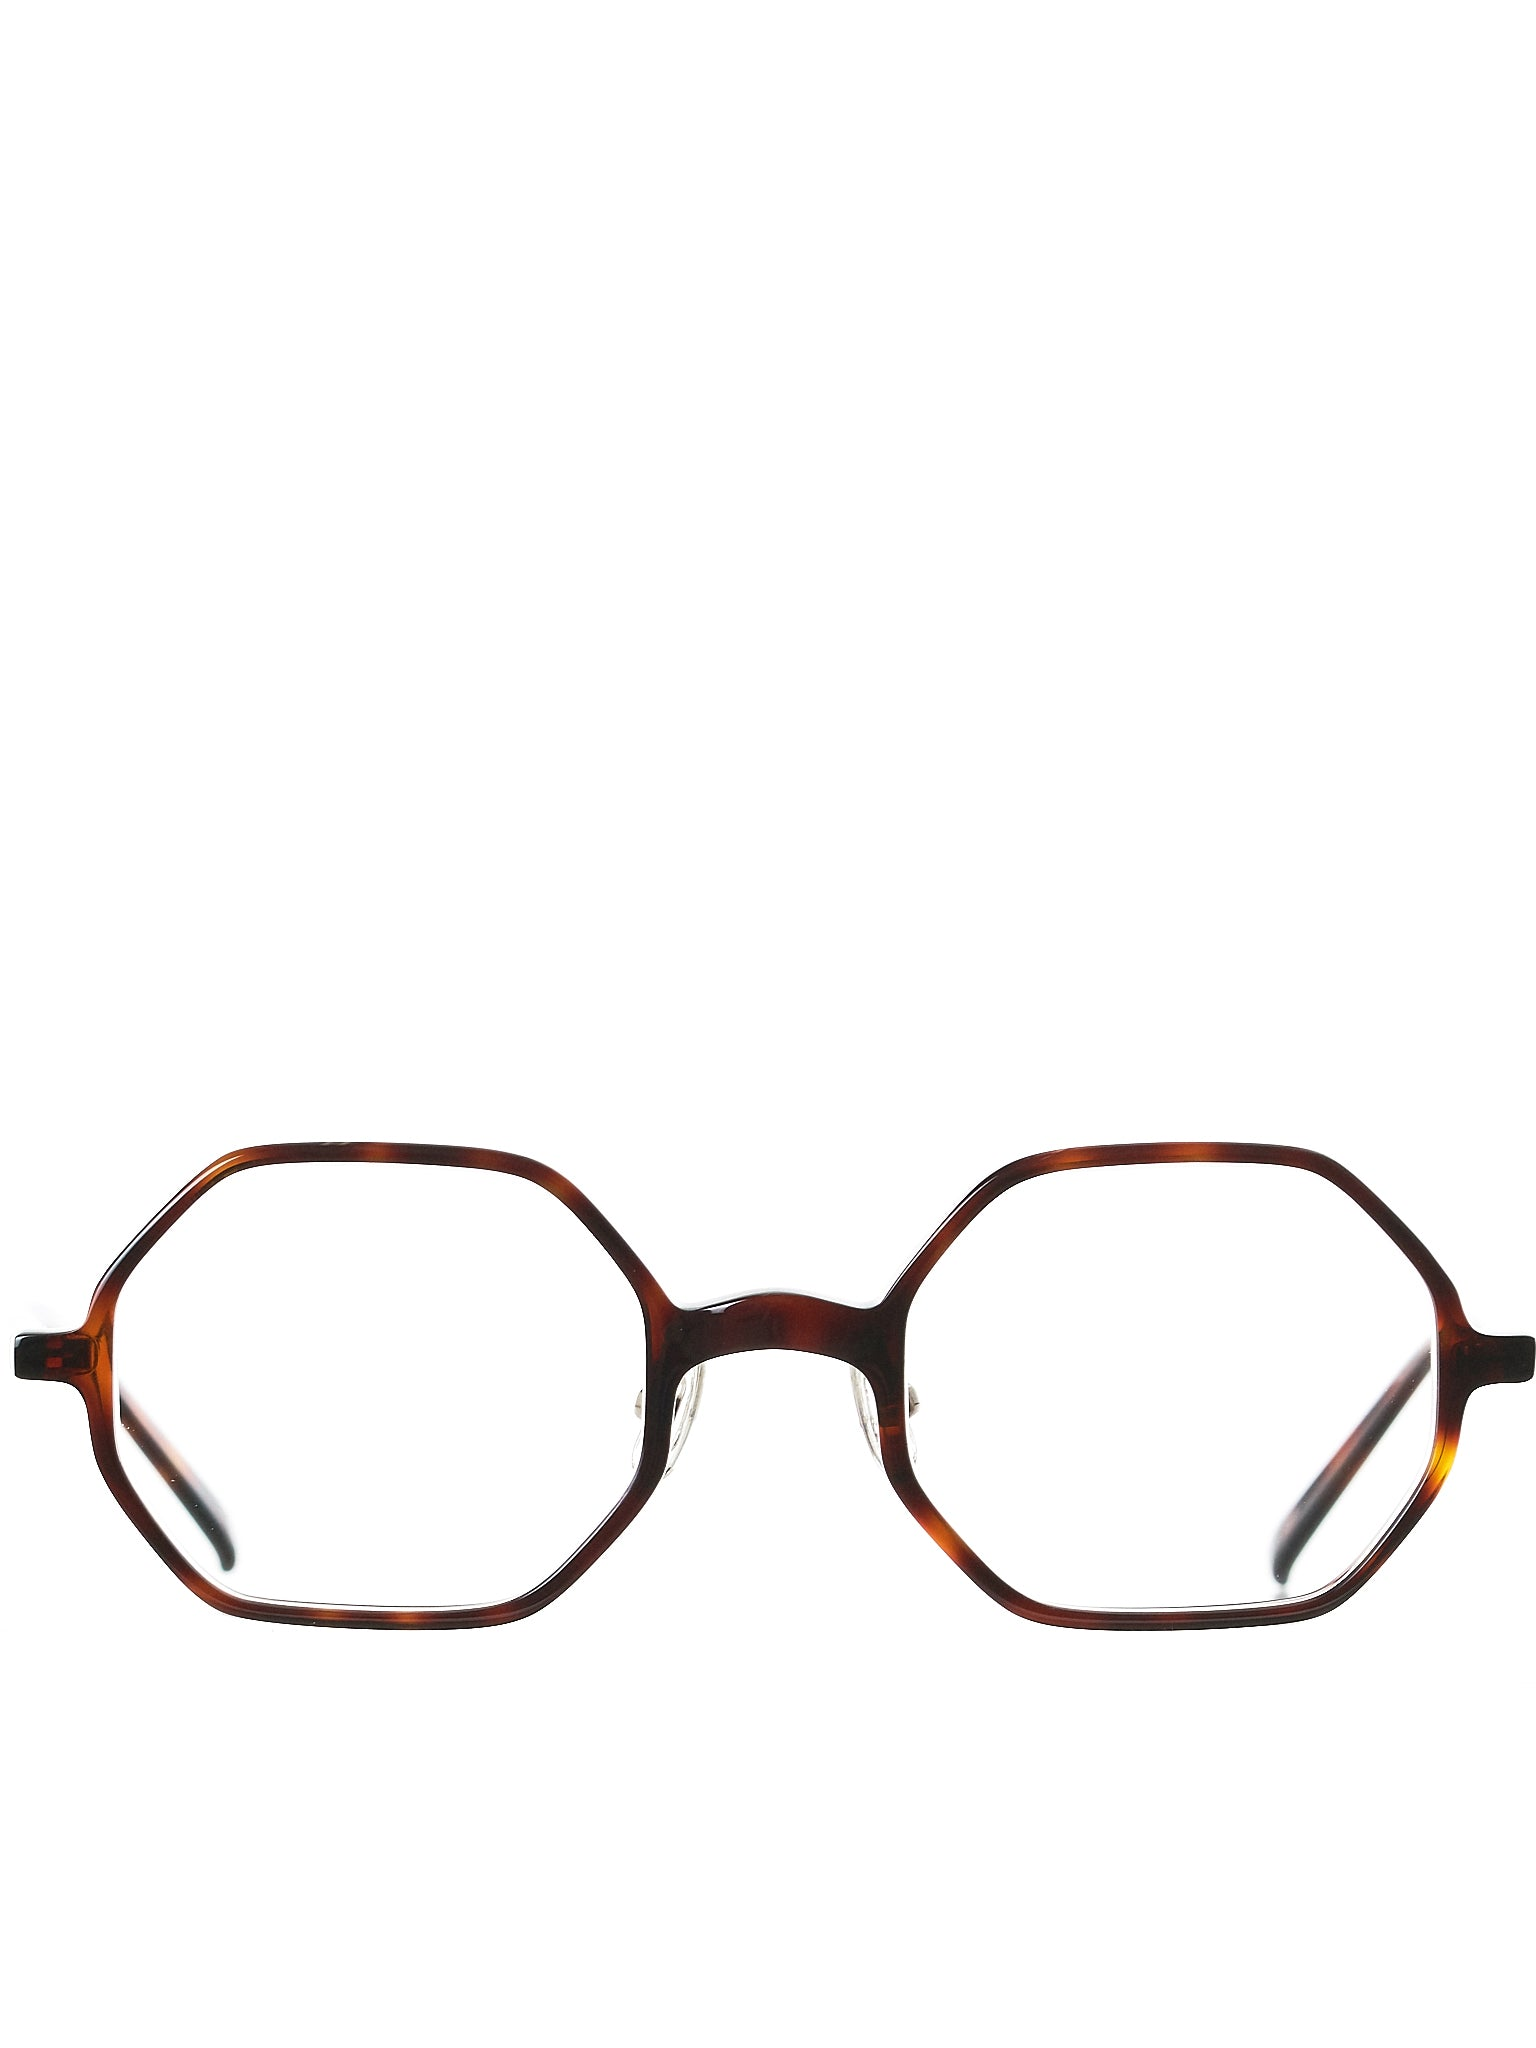 Marbled Octagon Glasses (OCTAGON-BROWN-TORT-CLEAR)